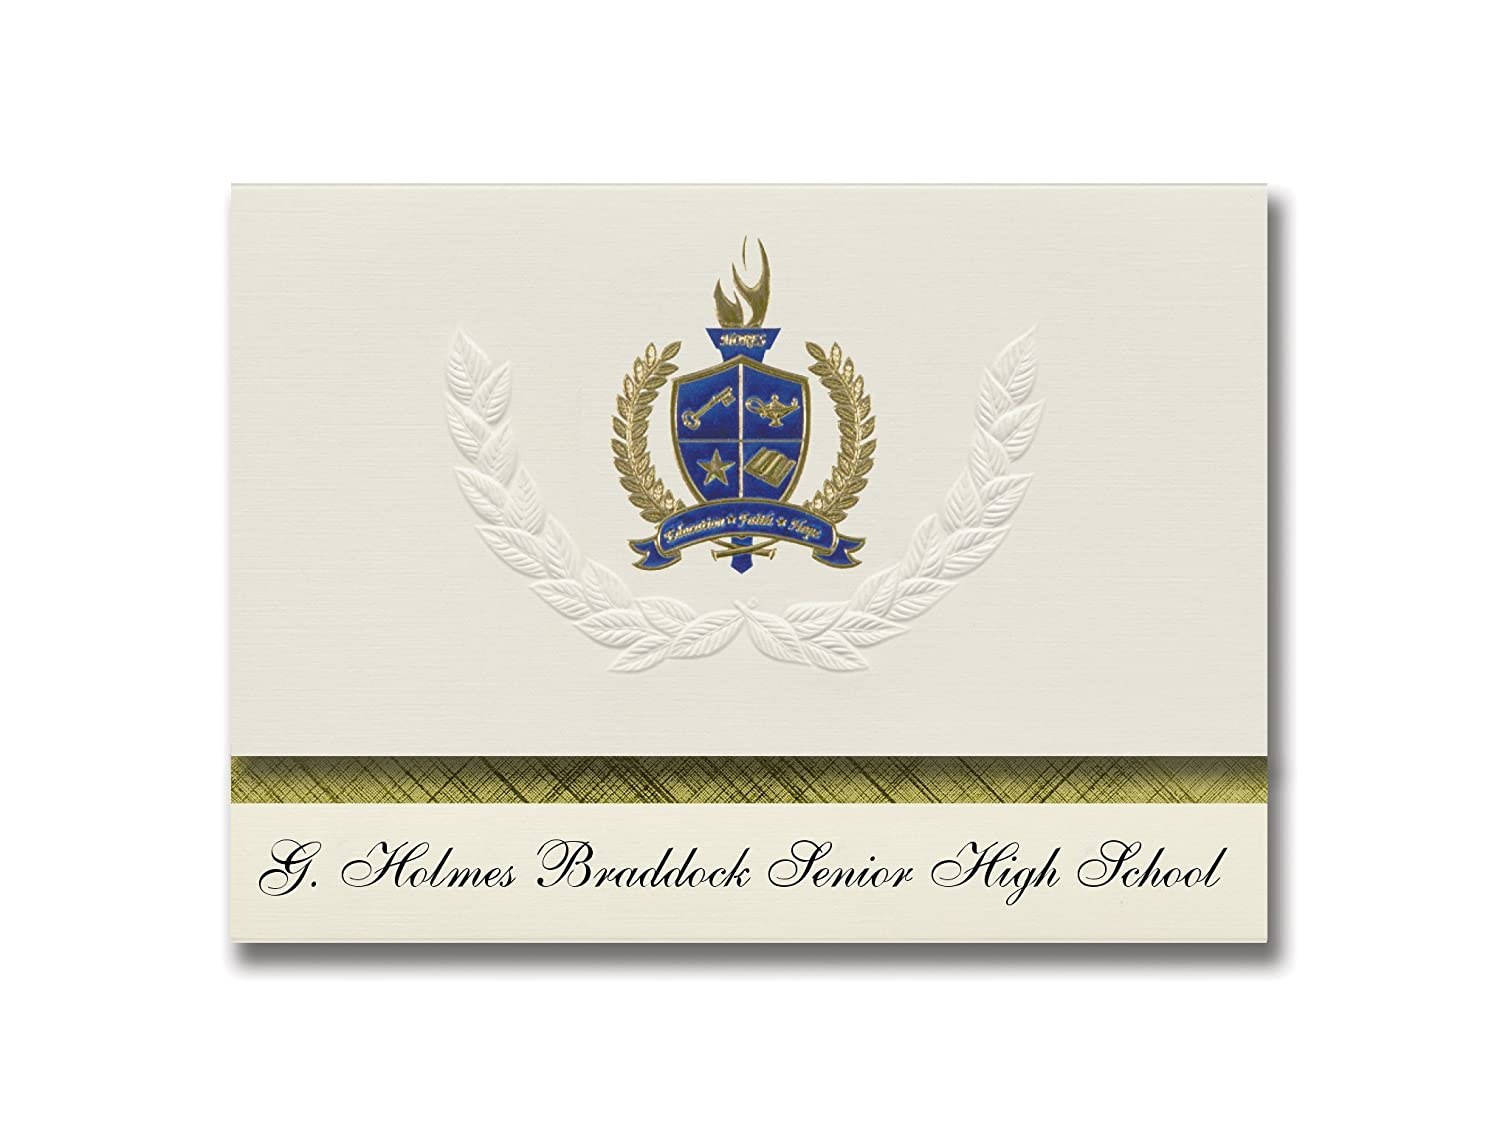 Signature Announcements G. Holmes Braddock Senior High School (Miami, FL) Graduation Announcements, Presidential Basic Pack 25 with Gold & Blue Metallic Foil seal